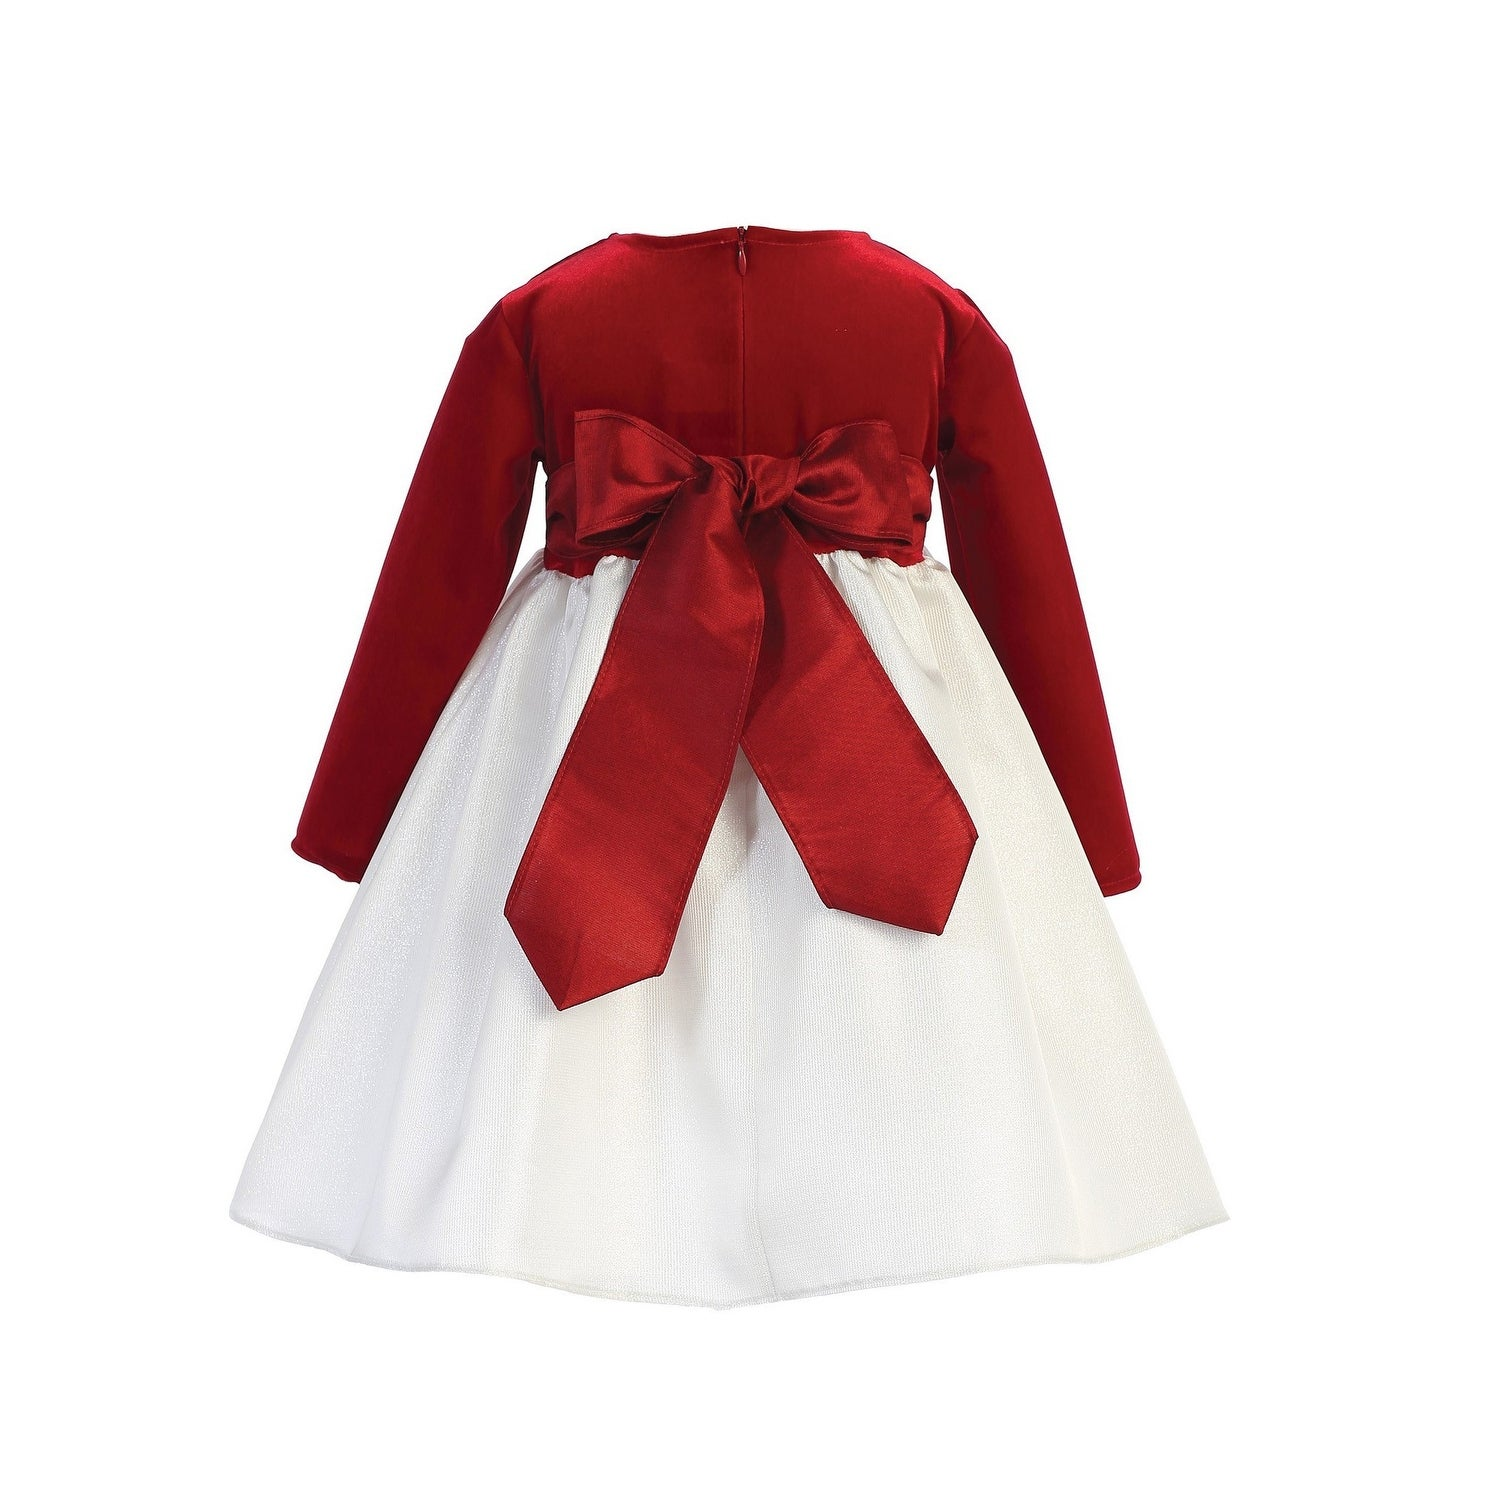 083a682a9 Shop Lito Girls Ivory Red Velvet Jacquard Long Sleeved Christmas Dress - Free  Shipping Today - Overstock - 23540328